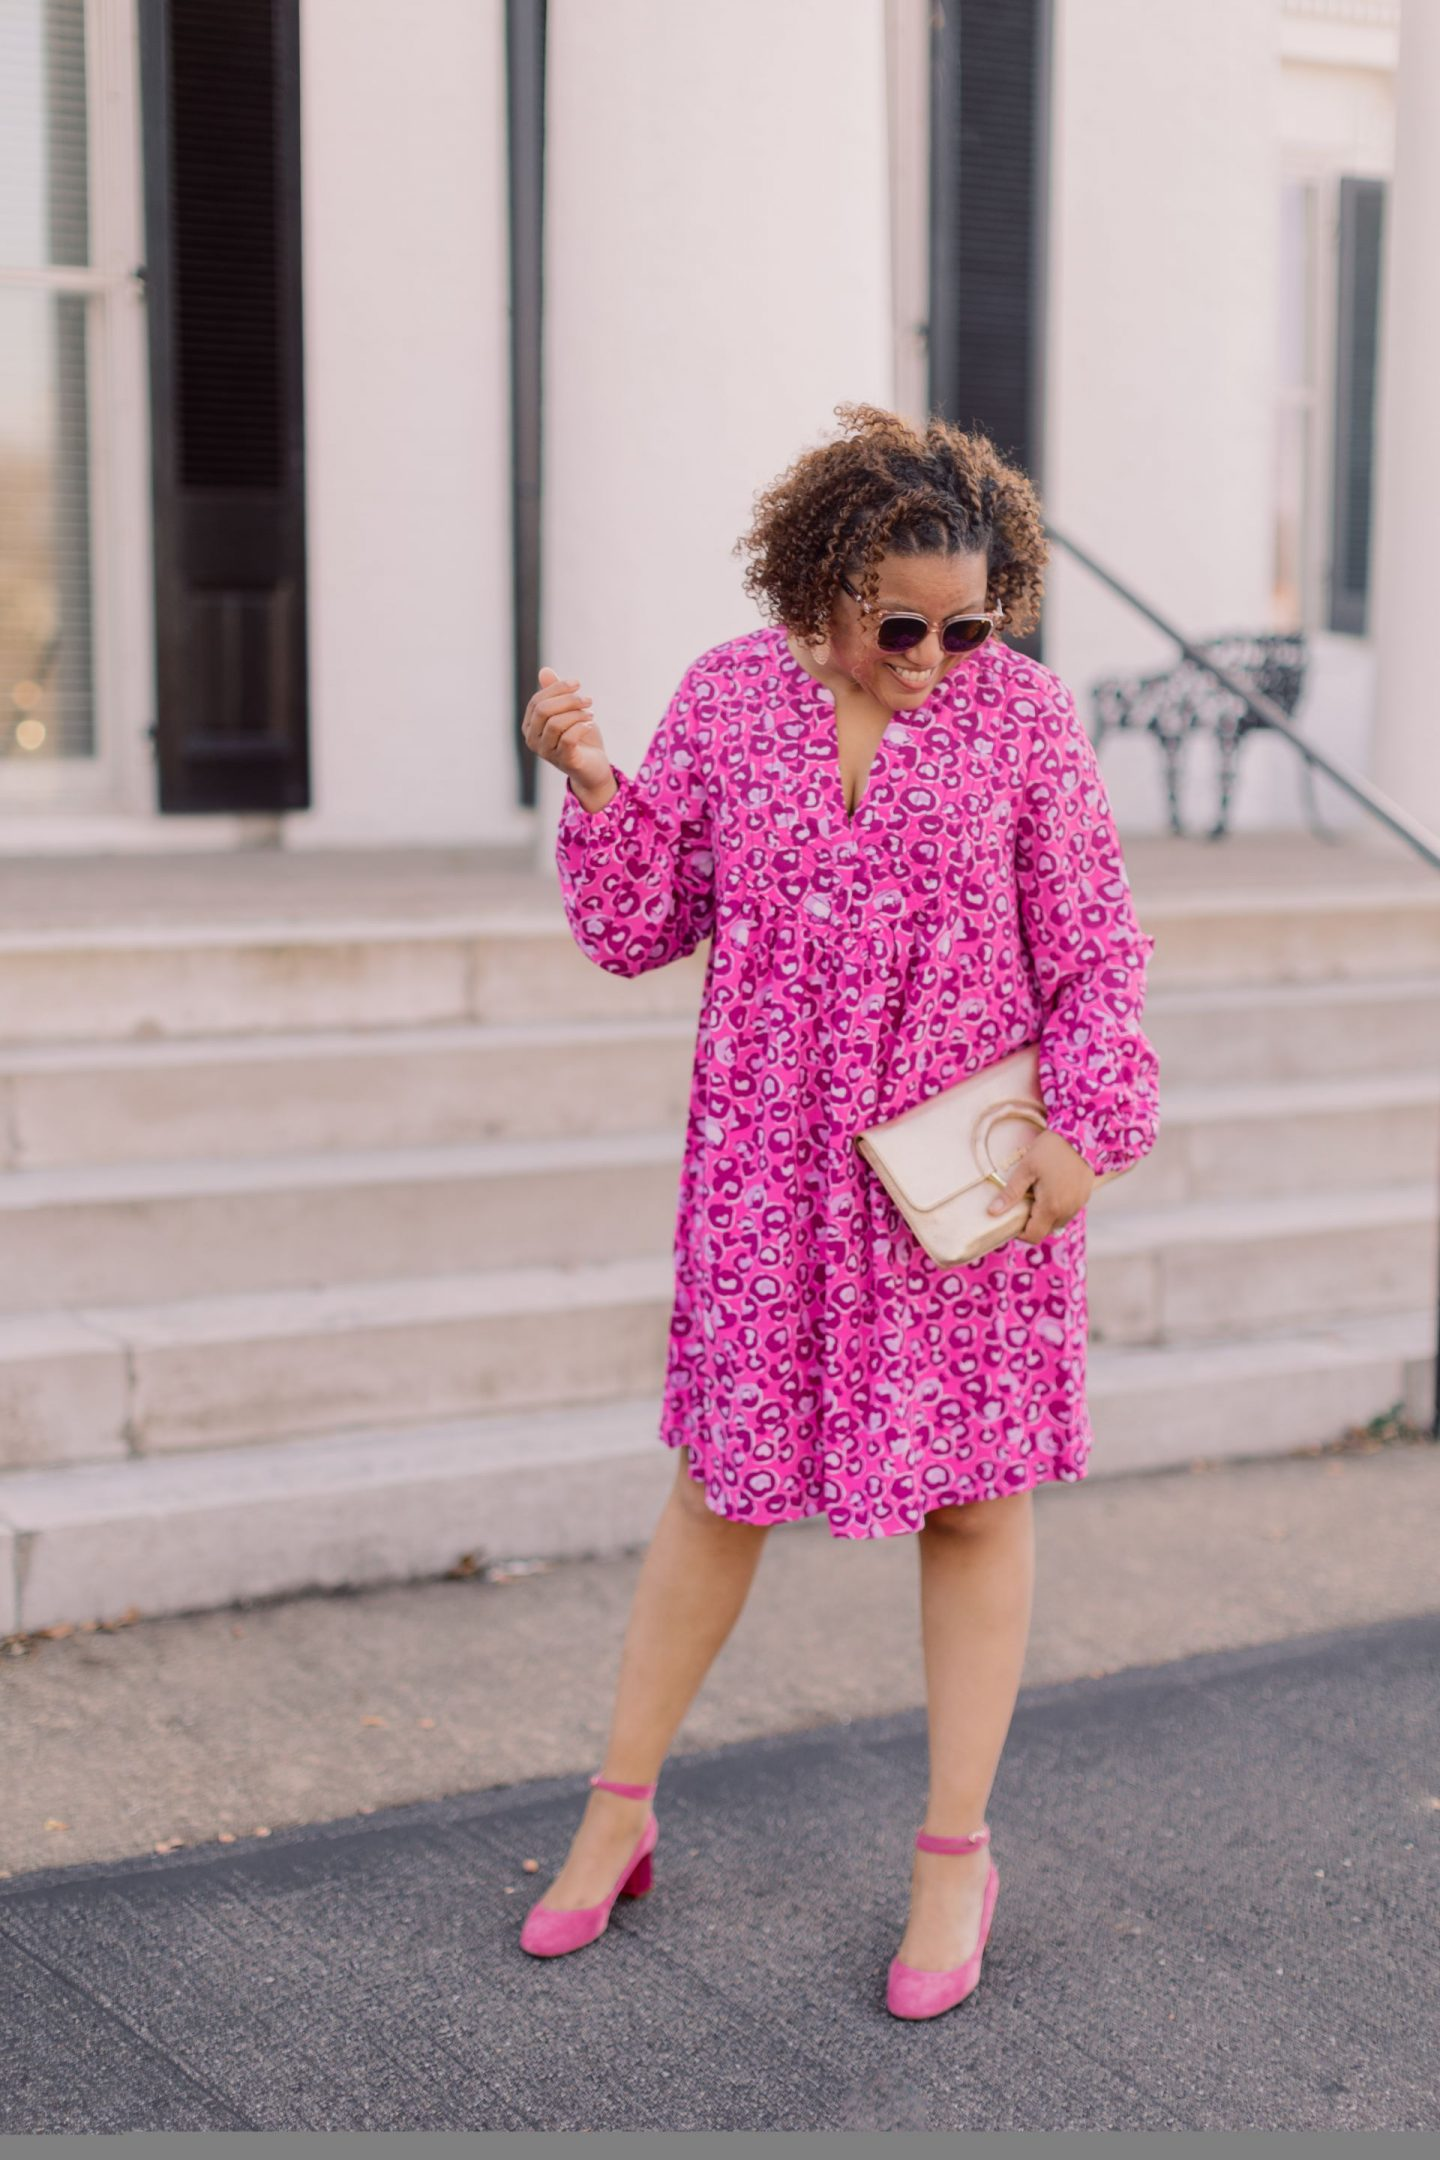 Valentine's Day Looks by popular Kentucky fashion blog, Really Rynetta: image of a woman wearing a pink leopard print dress with pink suede ankle strap heels and holding a rose gold clutch and wearing rose gold statement earrings.